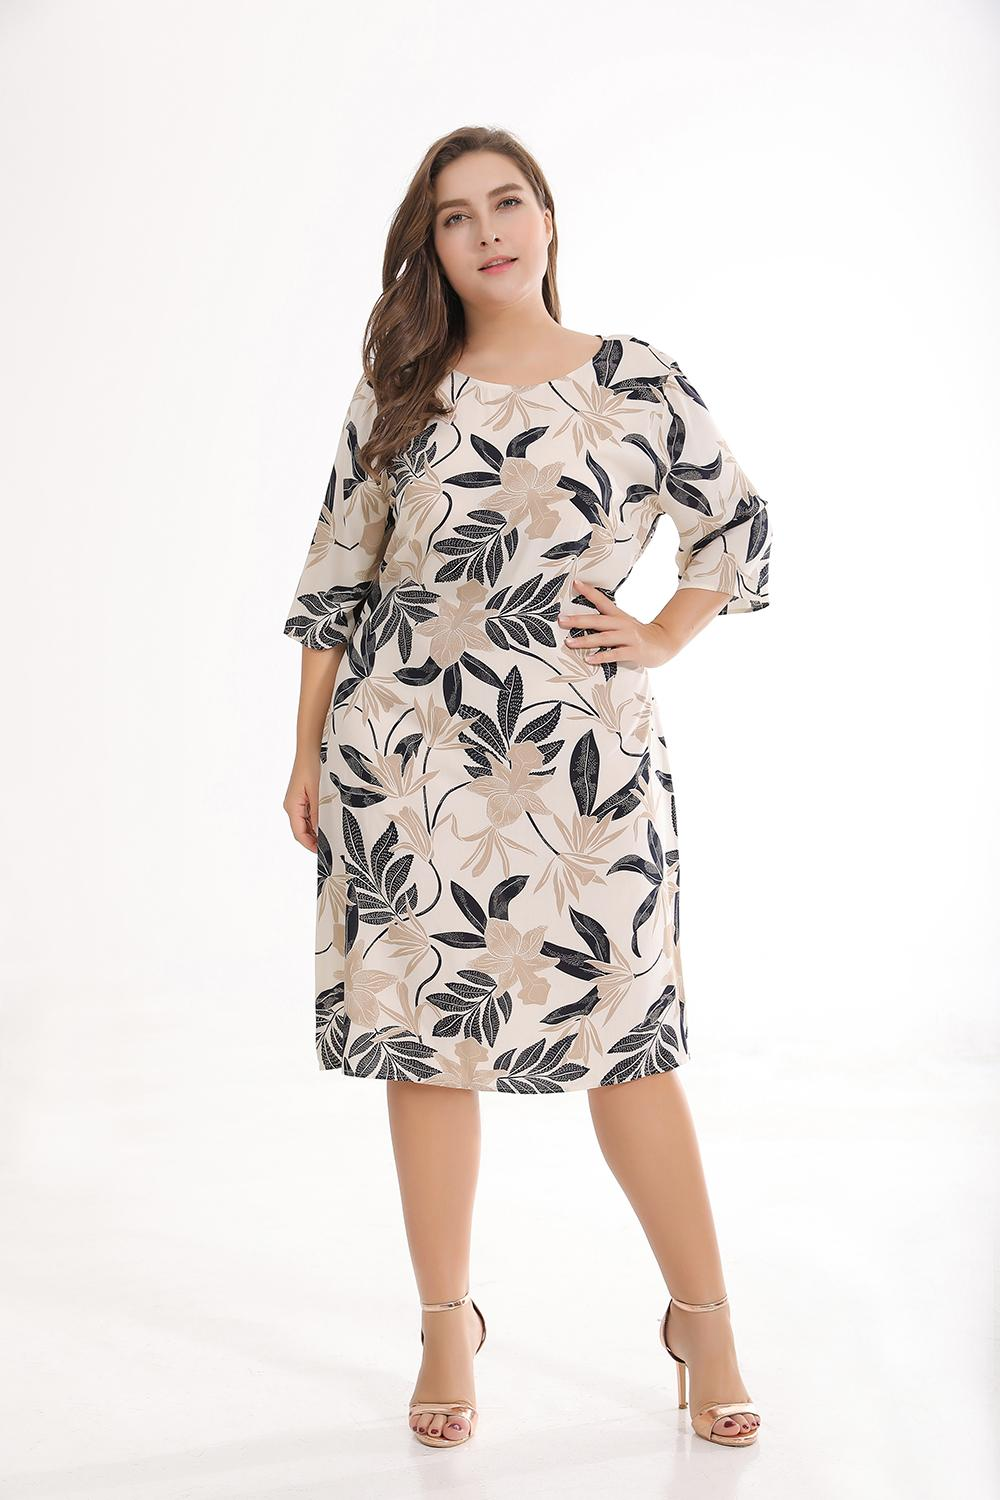 New Summer Casual Women Floral Print Dress 3/4 Sleeve Cotton Over Knee  Length Plus Size Dress Long Dresses Women Summer Dress Women From ...